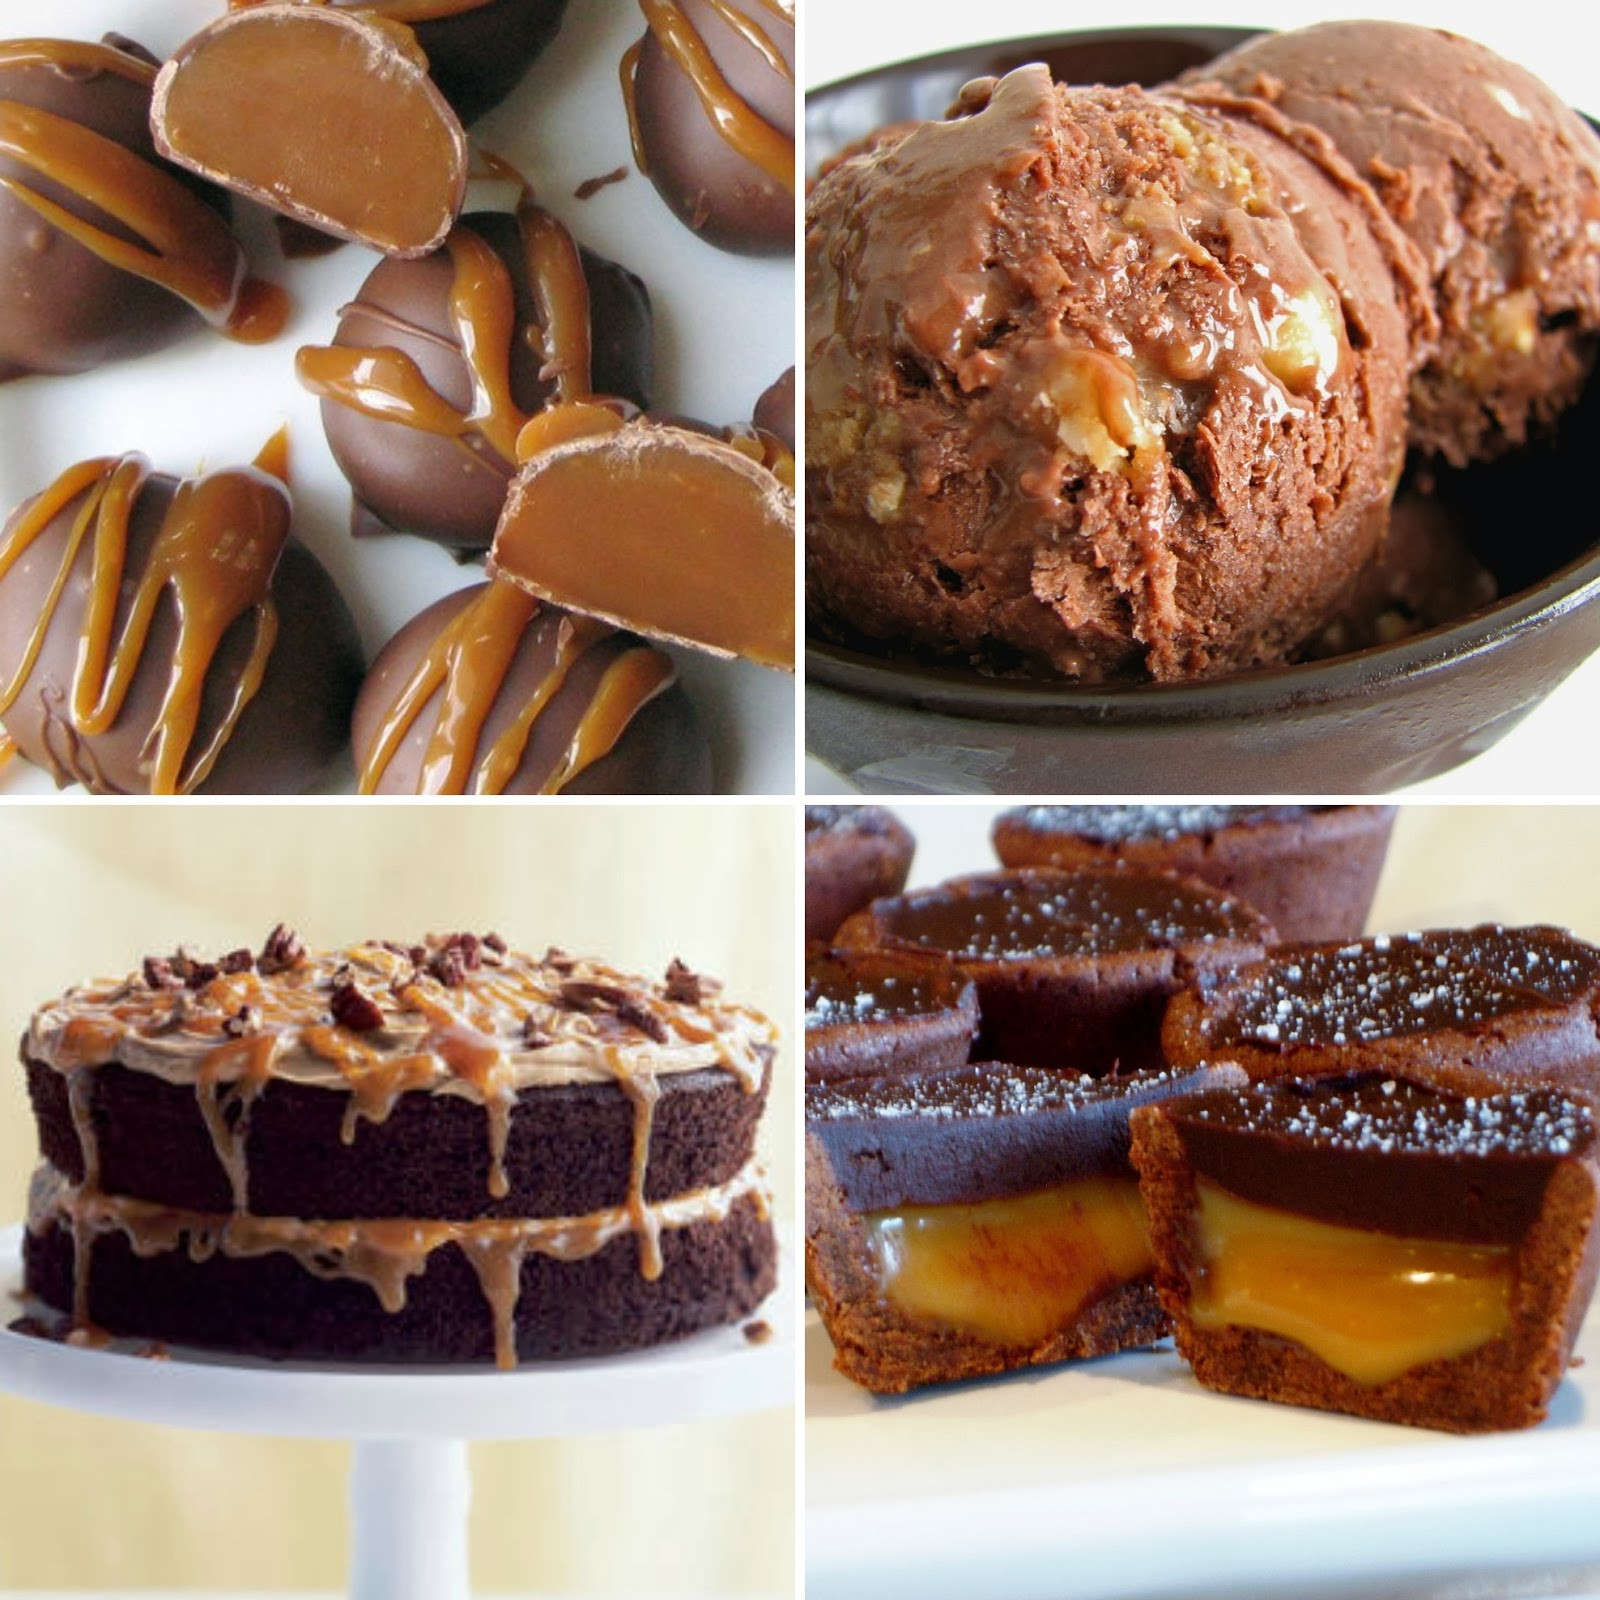 Chocolate Caramel Desserts  Thanks Mail Carrier